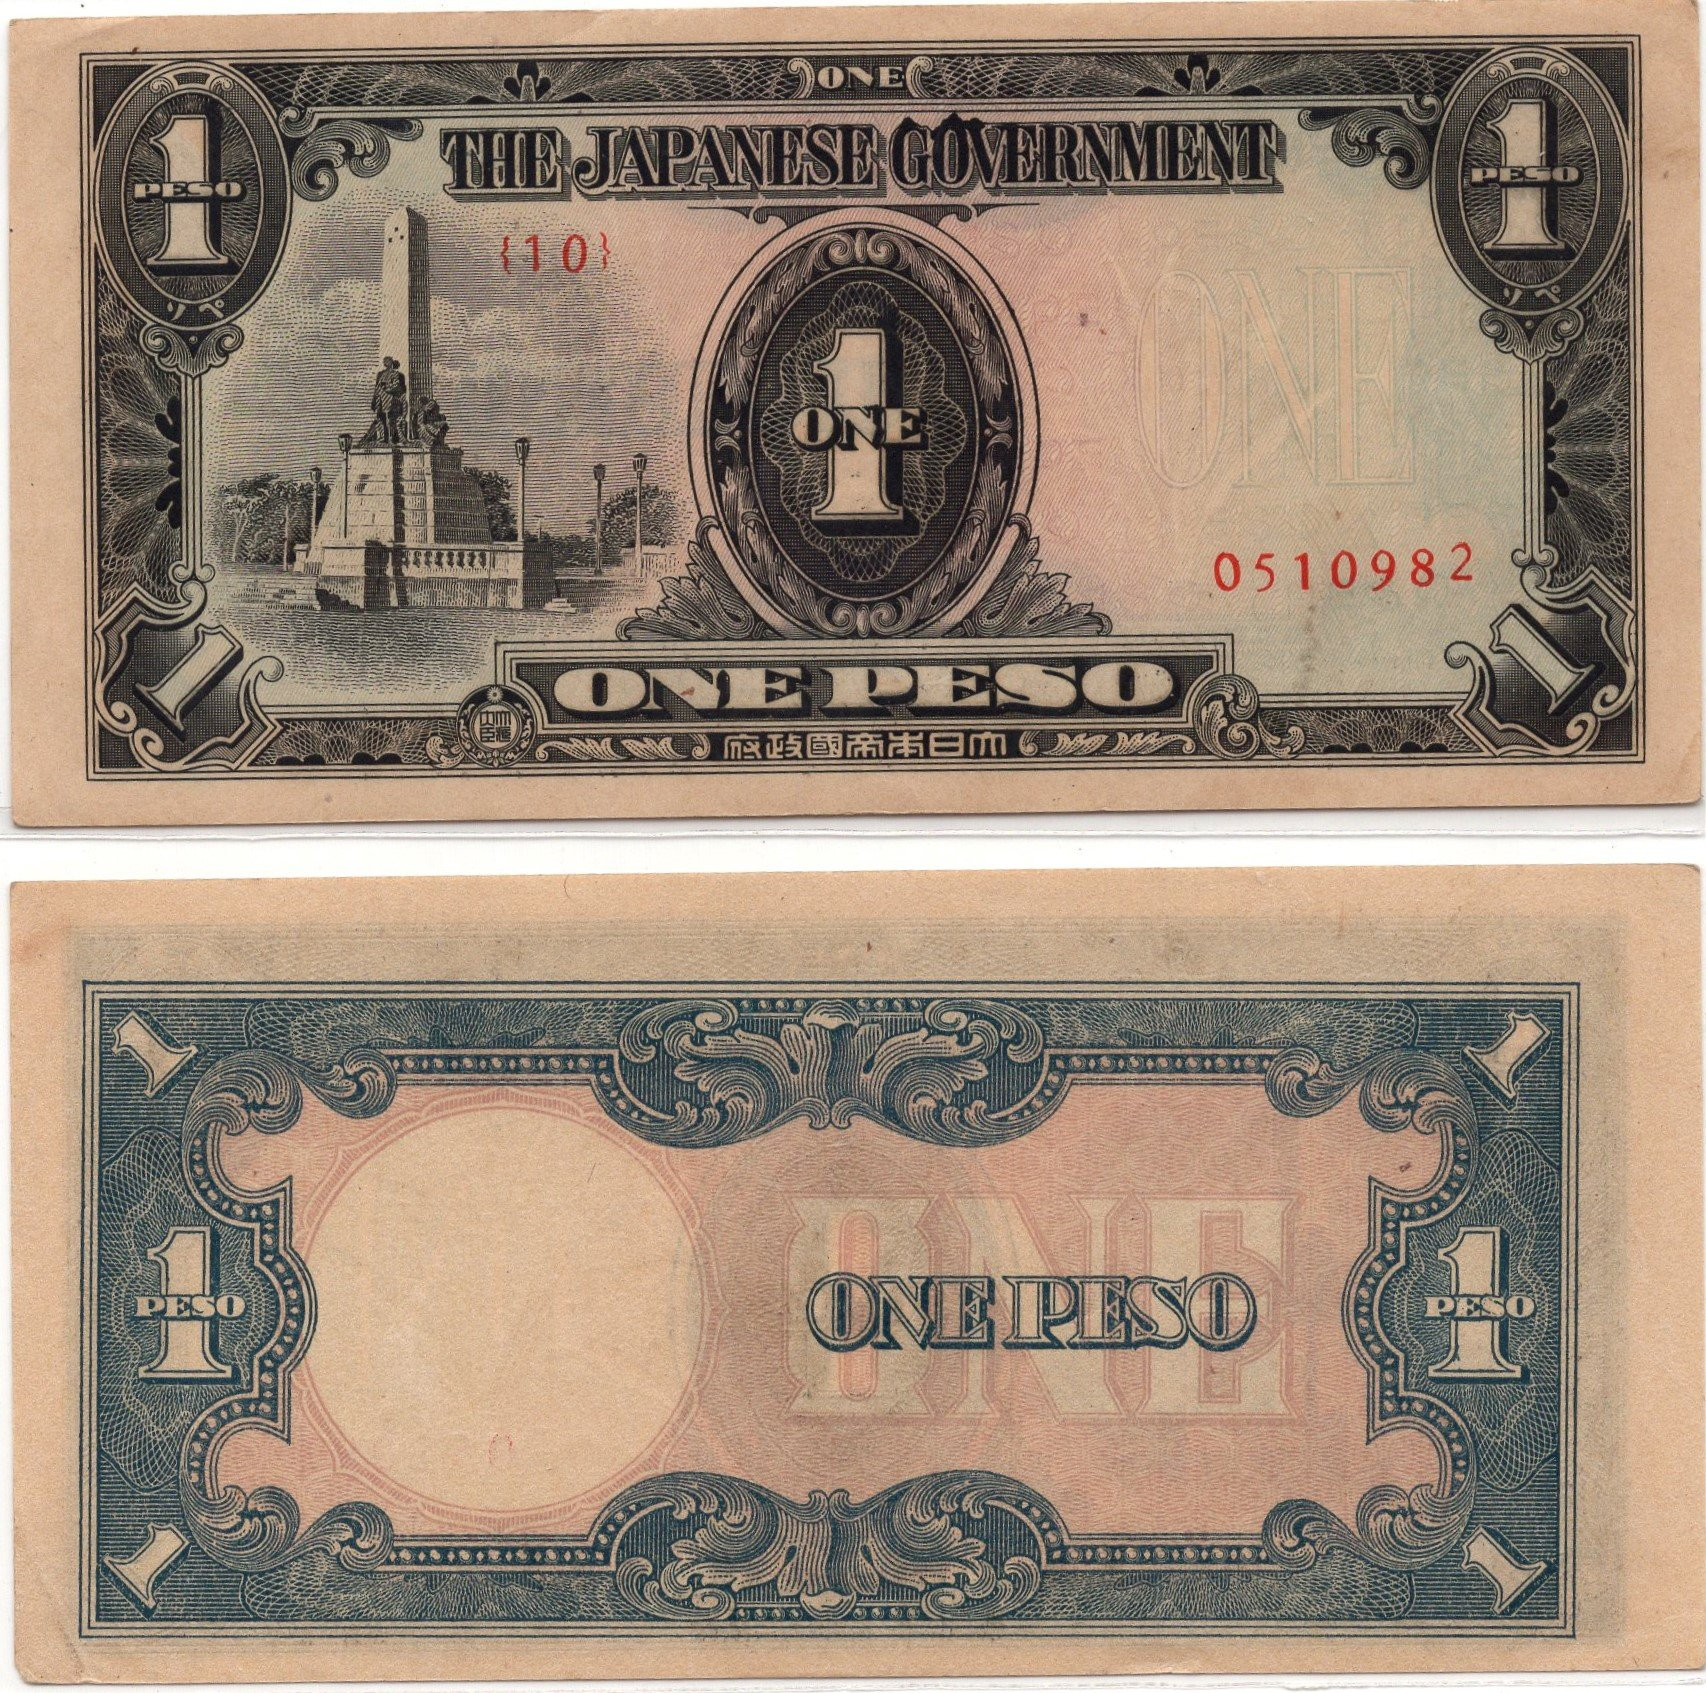 JIM Philippines 1 peso banknote for sale